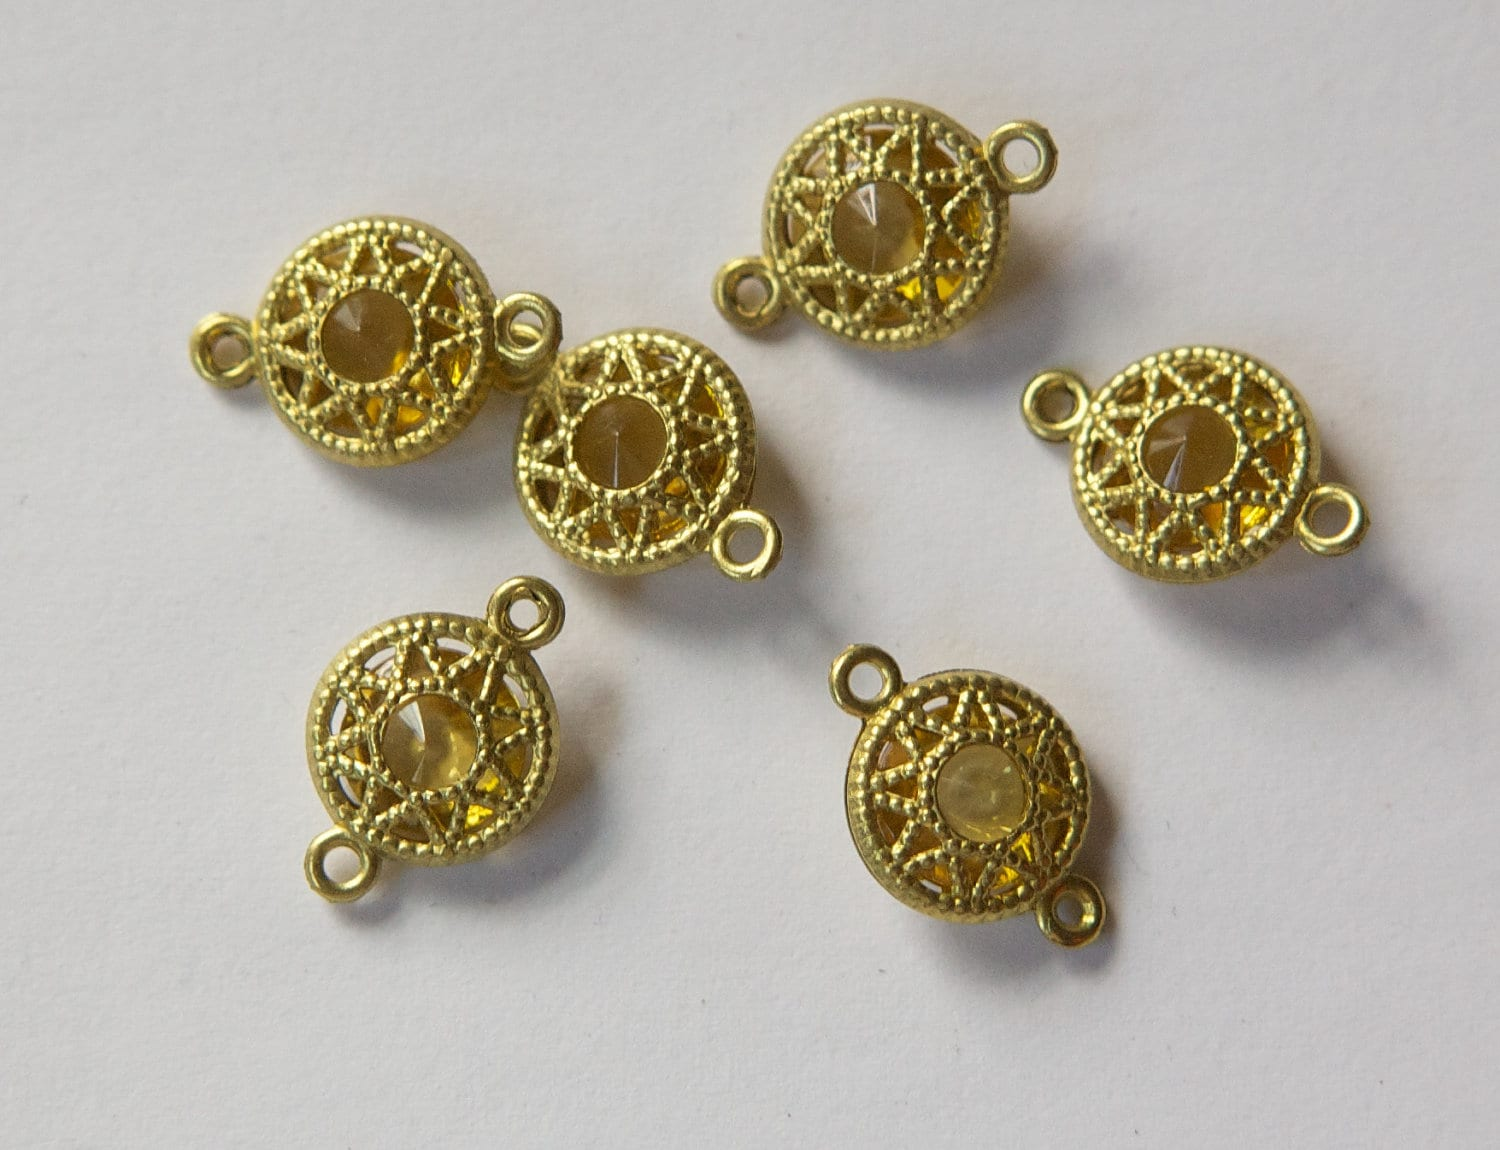 Vintage Light Topaz Connector Beads with Neat Brass Frames 10mm (6 ...